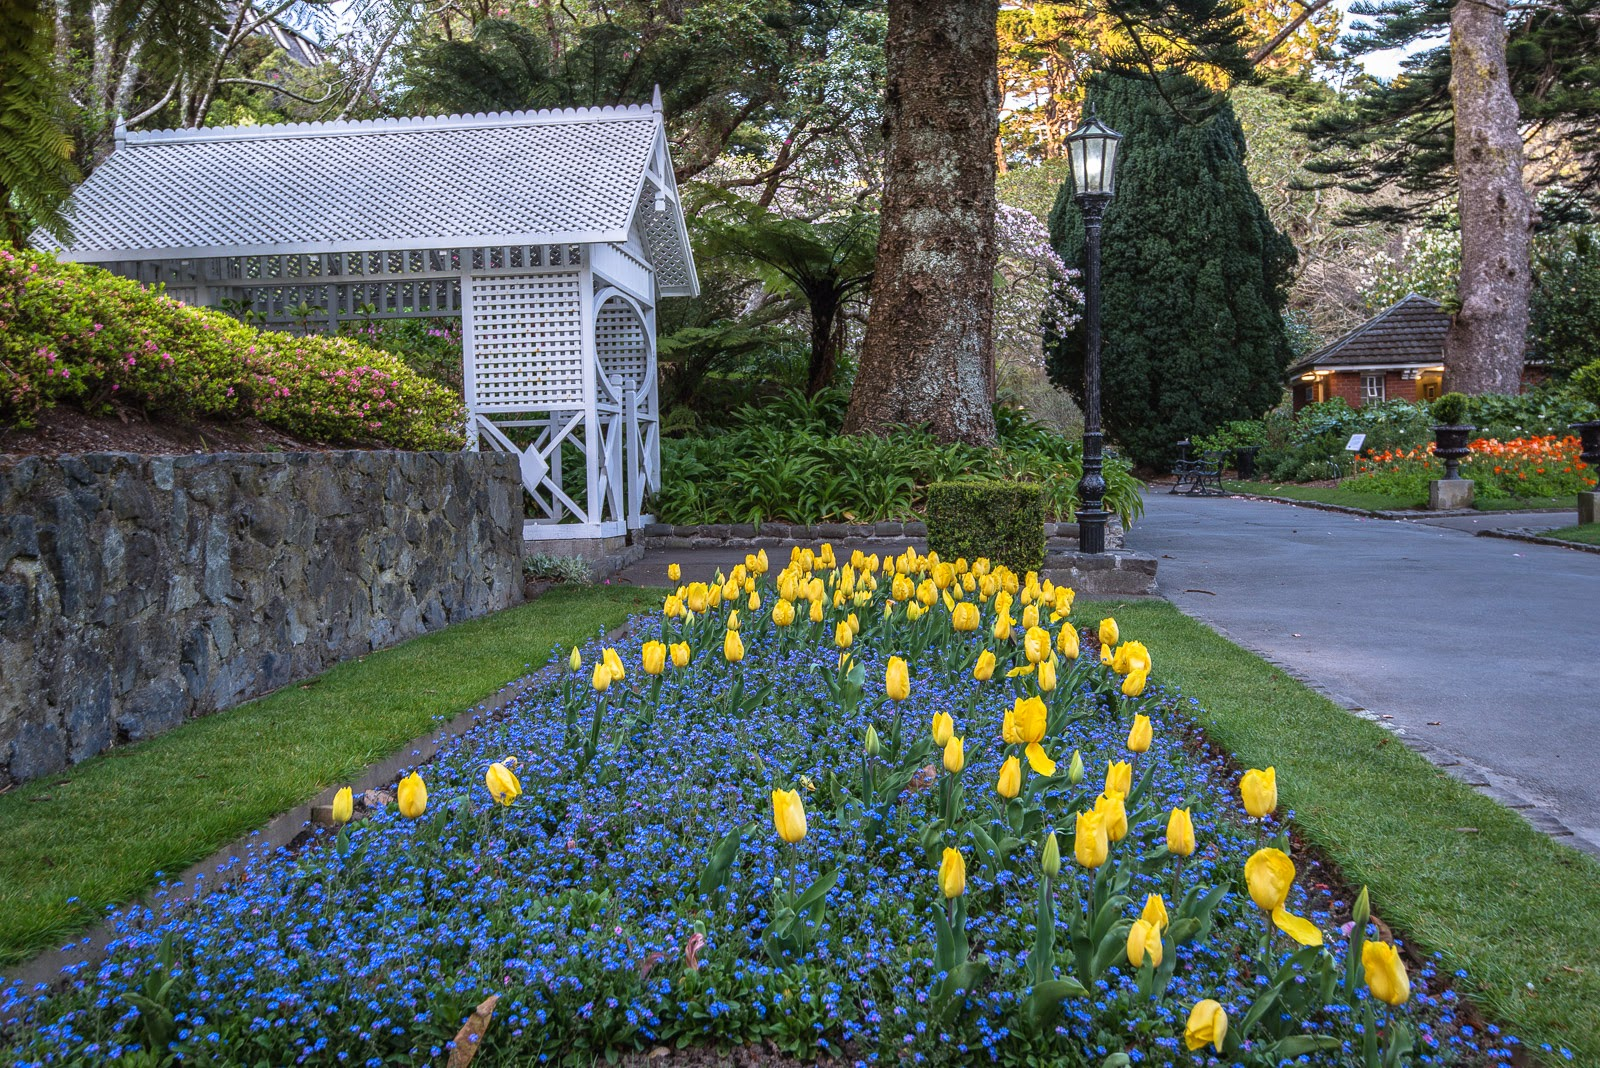 yellow tulips in bloom with gatehouse and lamppost